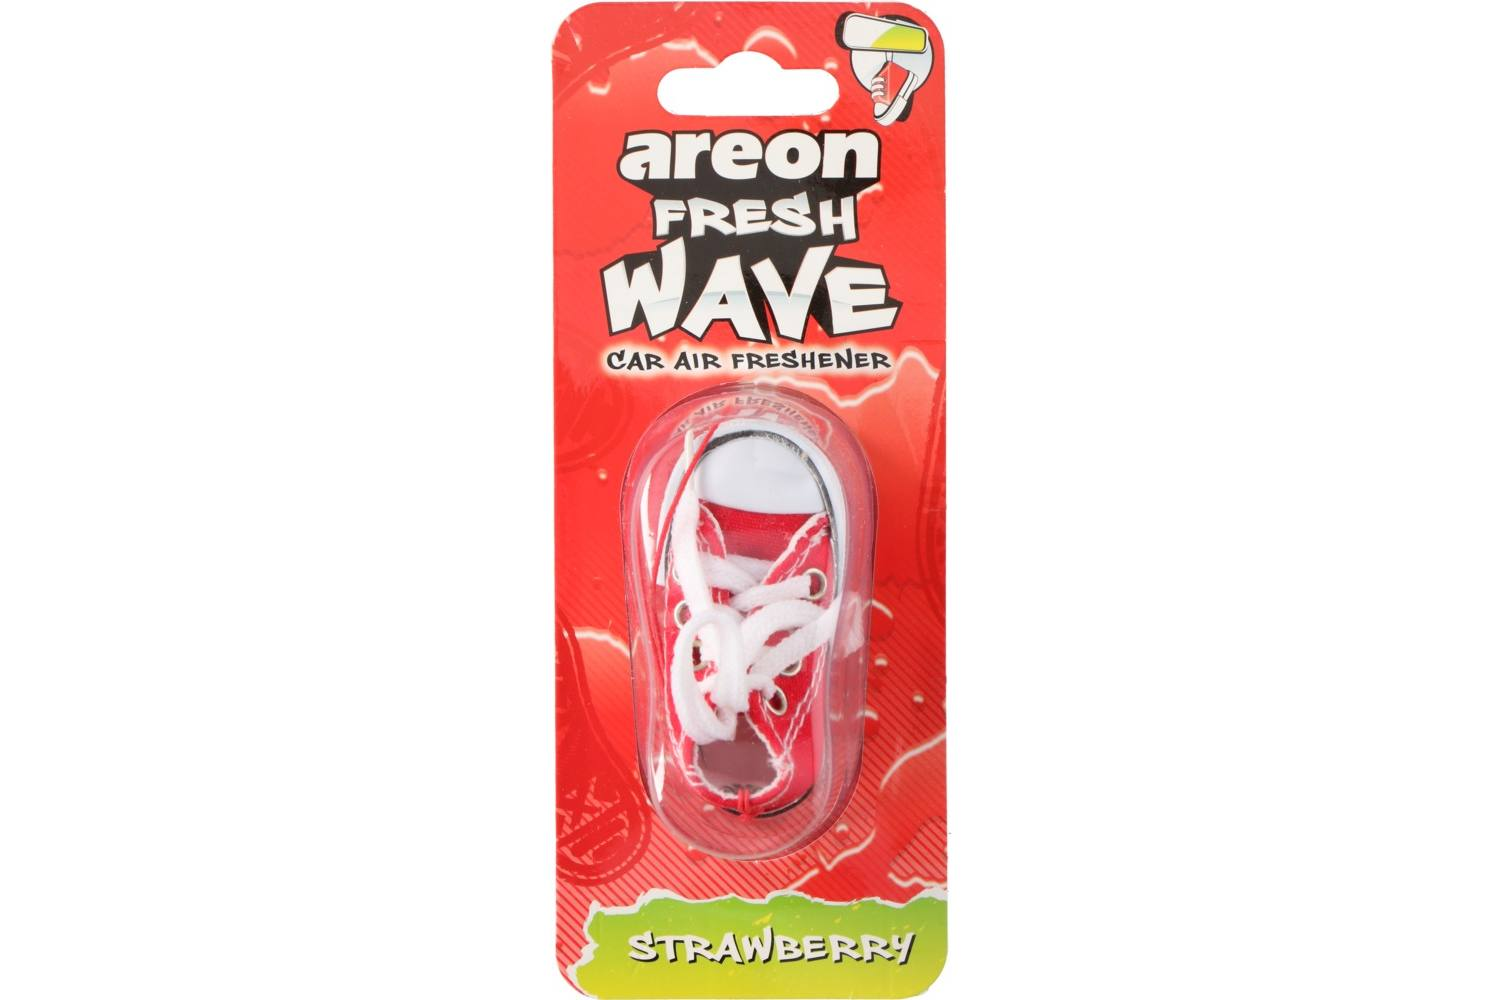 Air freshener, Areon Fresh wave, strawberry 1